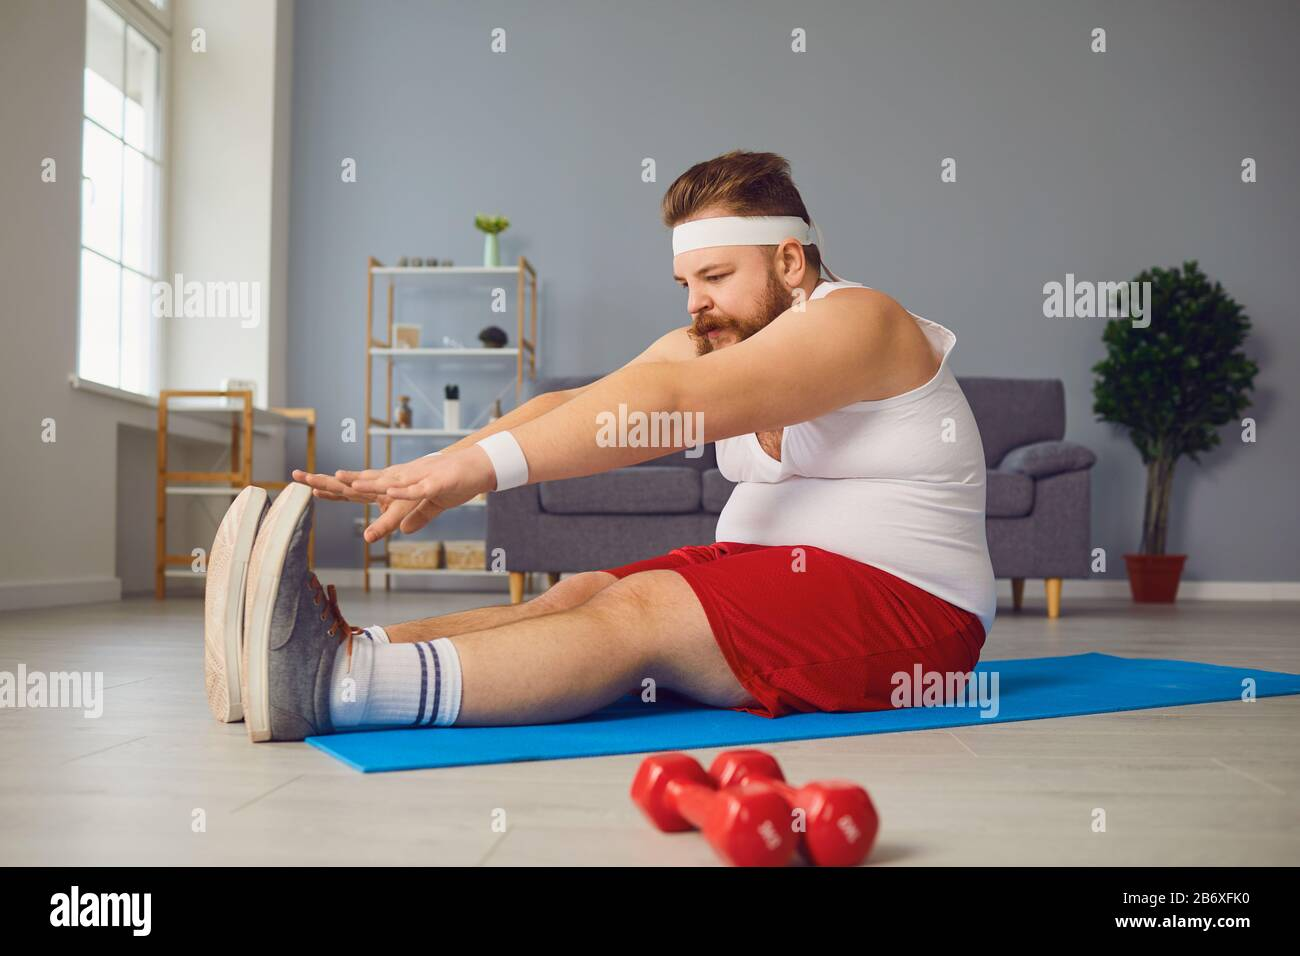 Funny Red Fat Man Doing Exercises On The Floor While Standing At Home Stock Photo Alamy